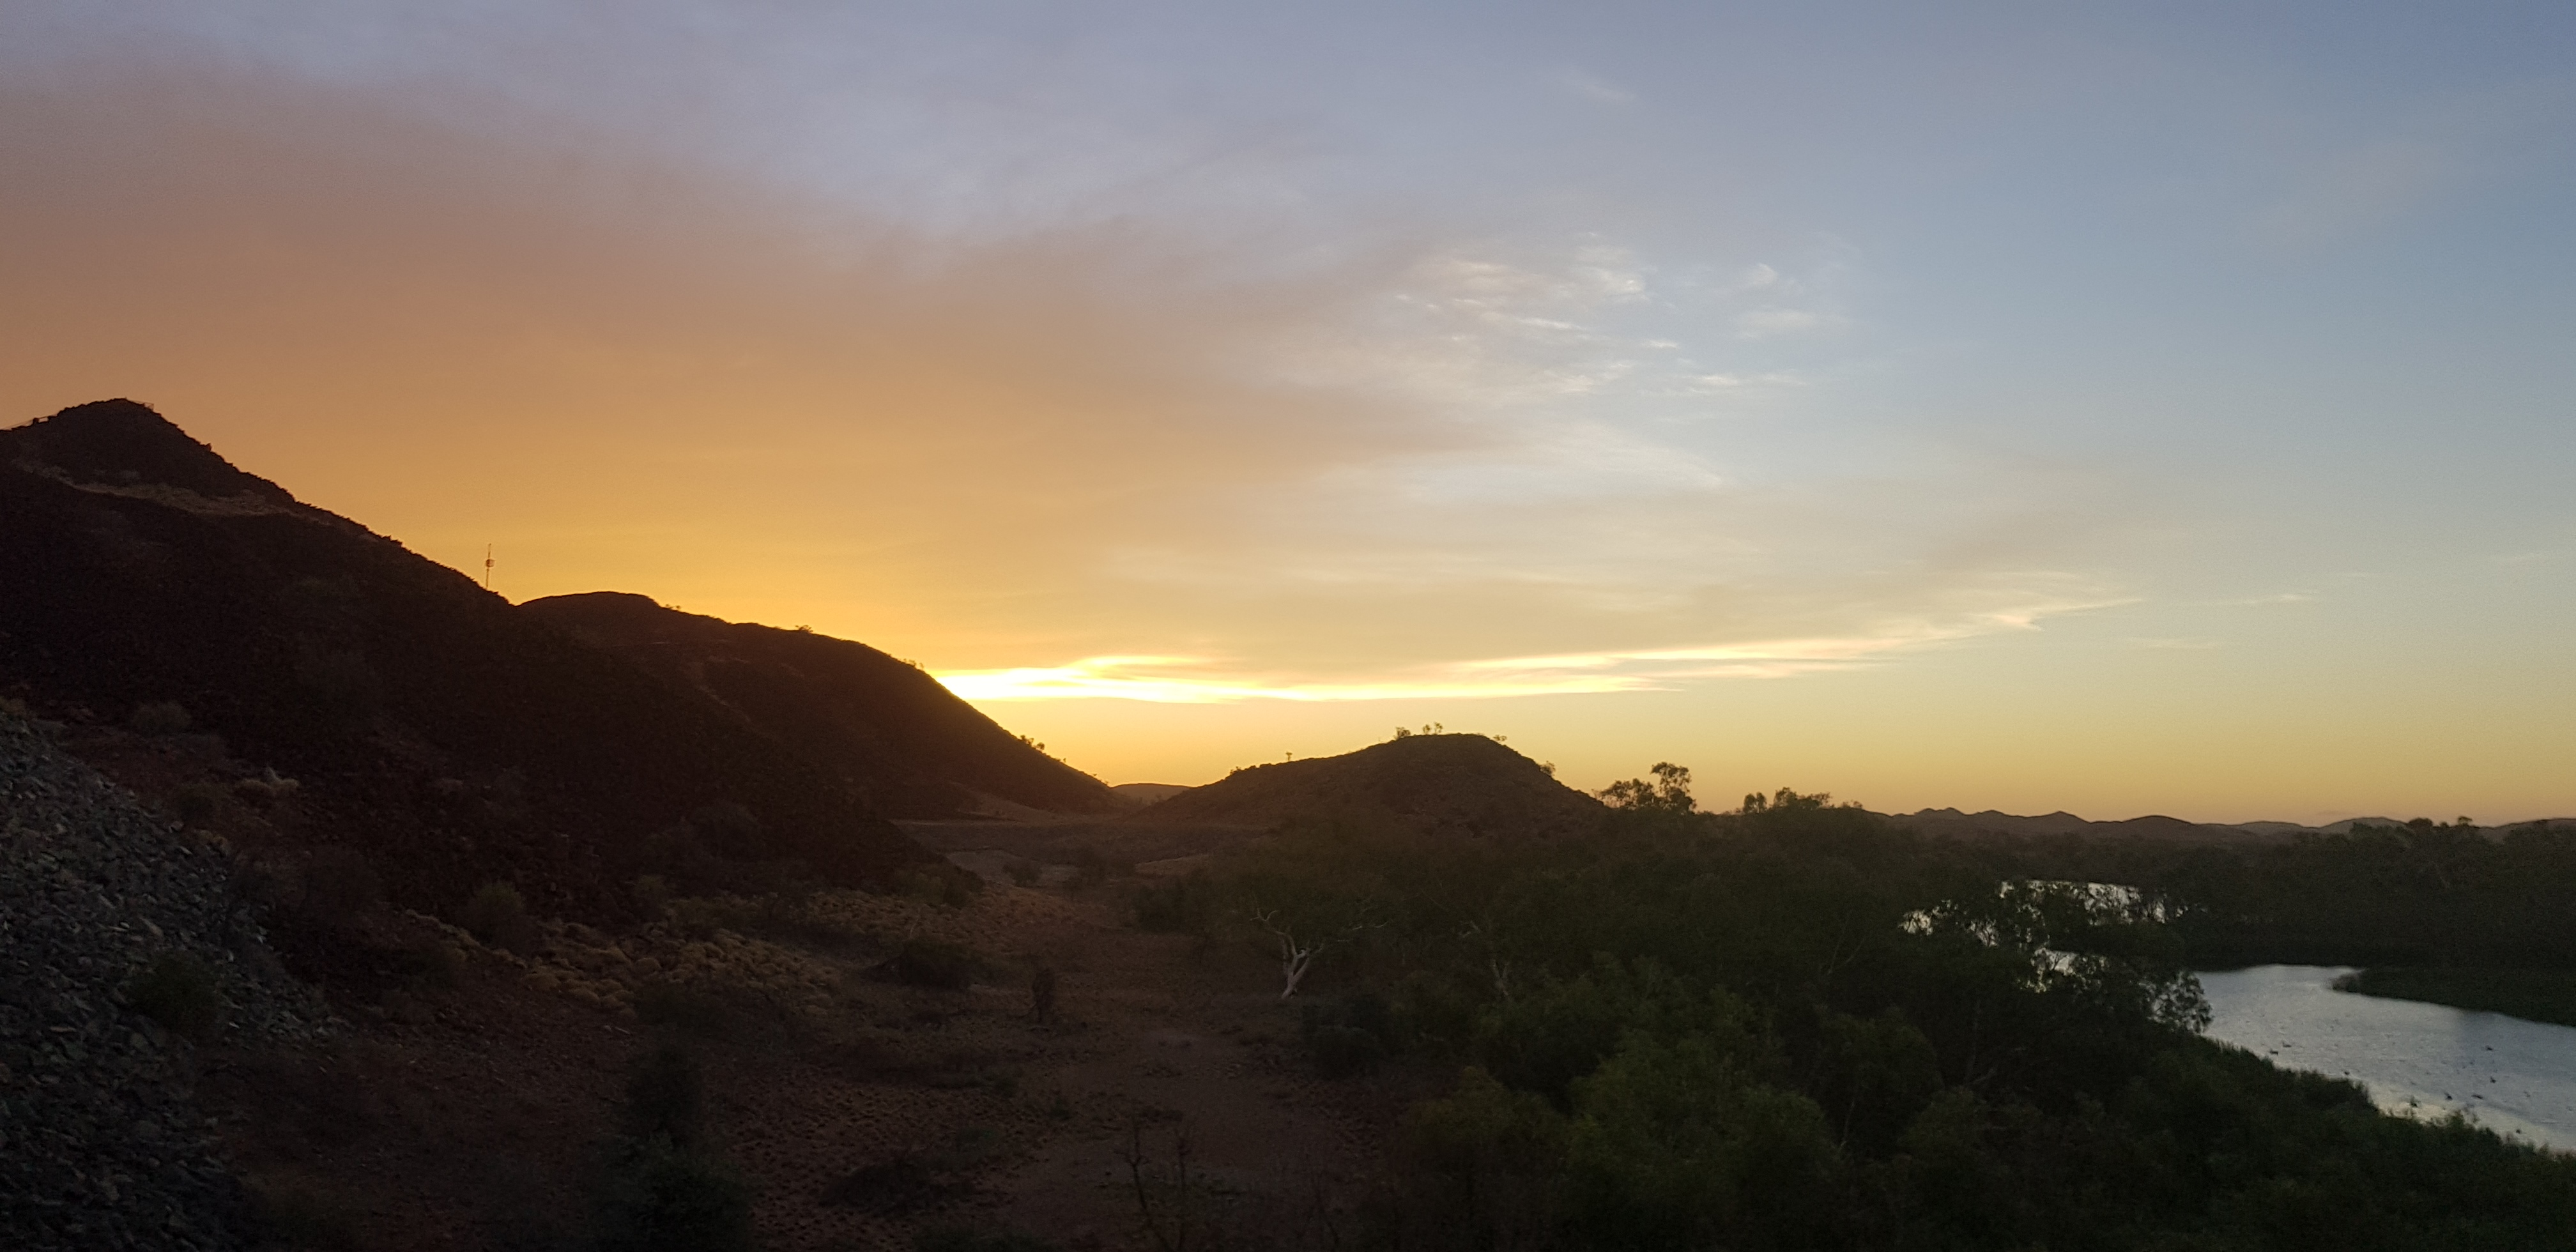 Sunset over the Pilbara hills